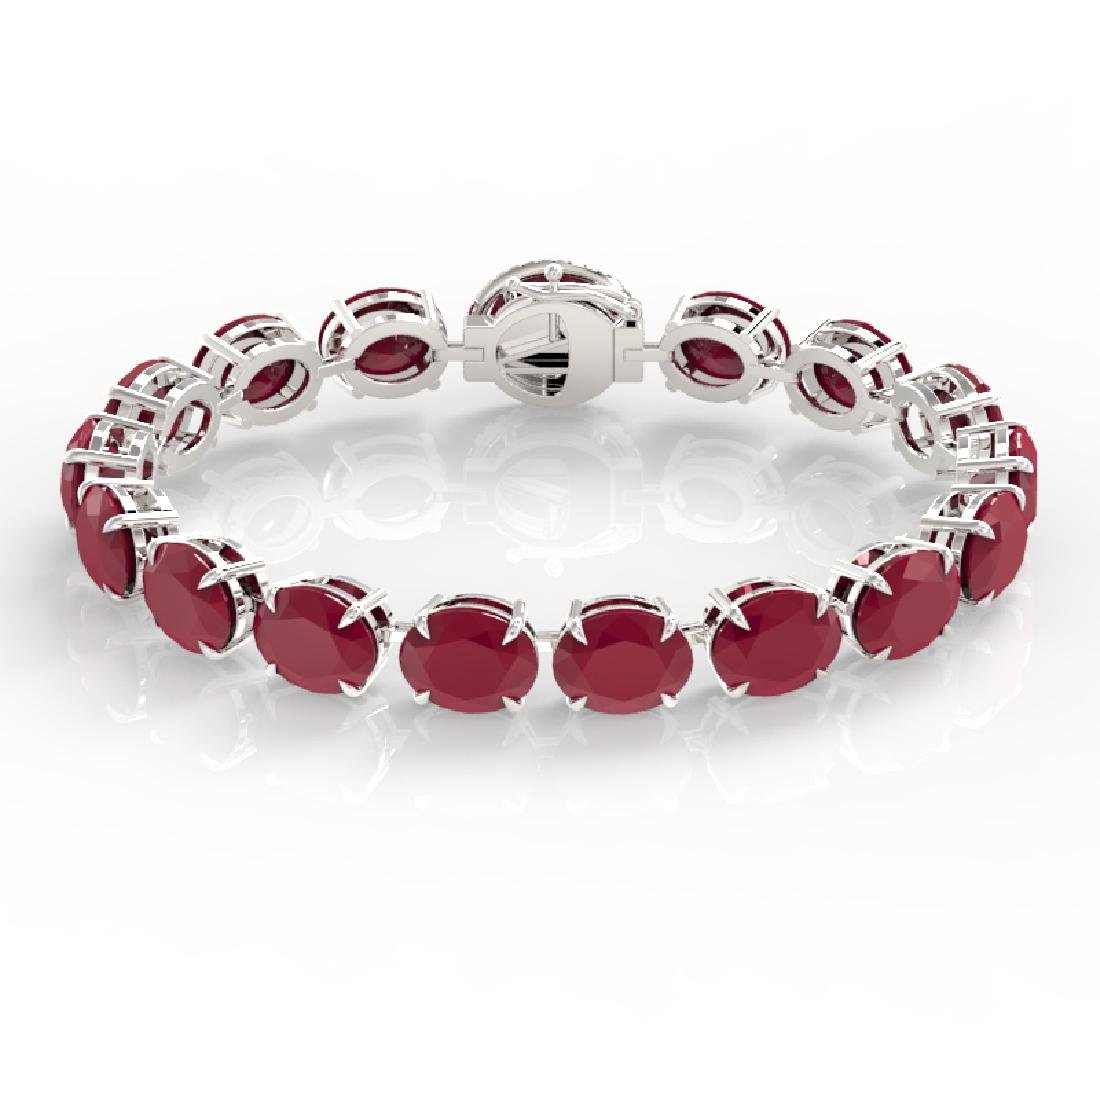 75 CTW Ruby & Micro Pave VS/SI Diamond Halo Bracelet - 2